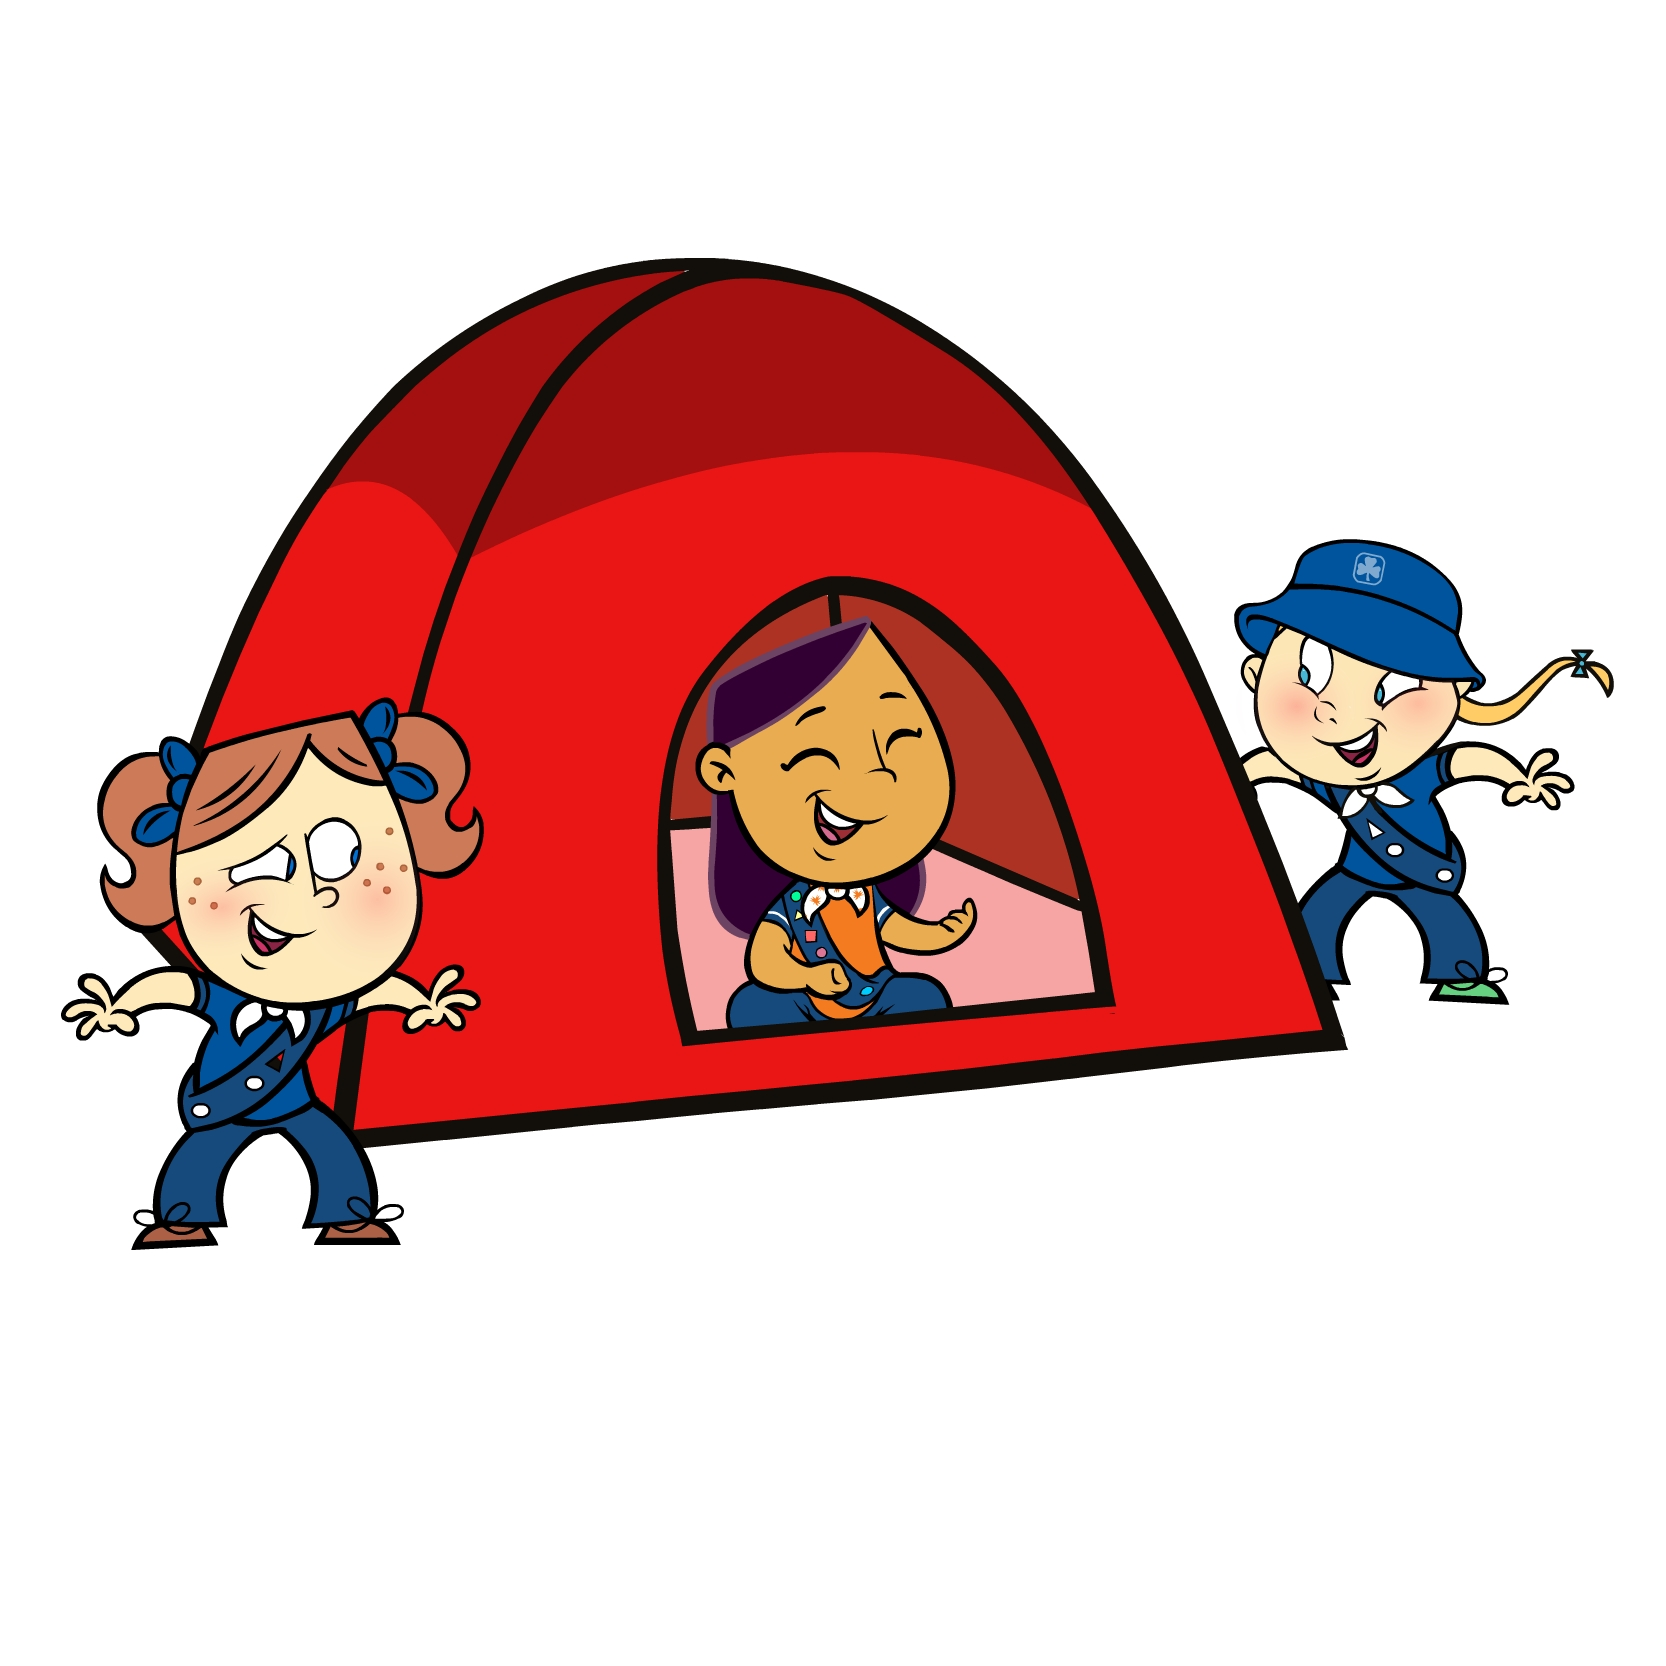 Canoe camp song clipart clipart free Collection of 14 free Canoe clipart girl guides aztec clipart ... clipart free